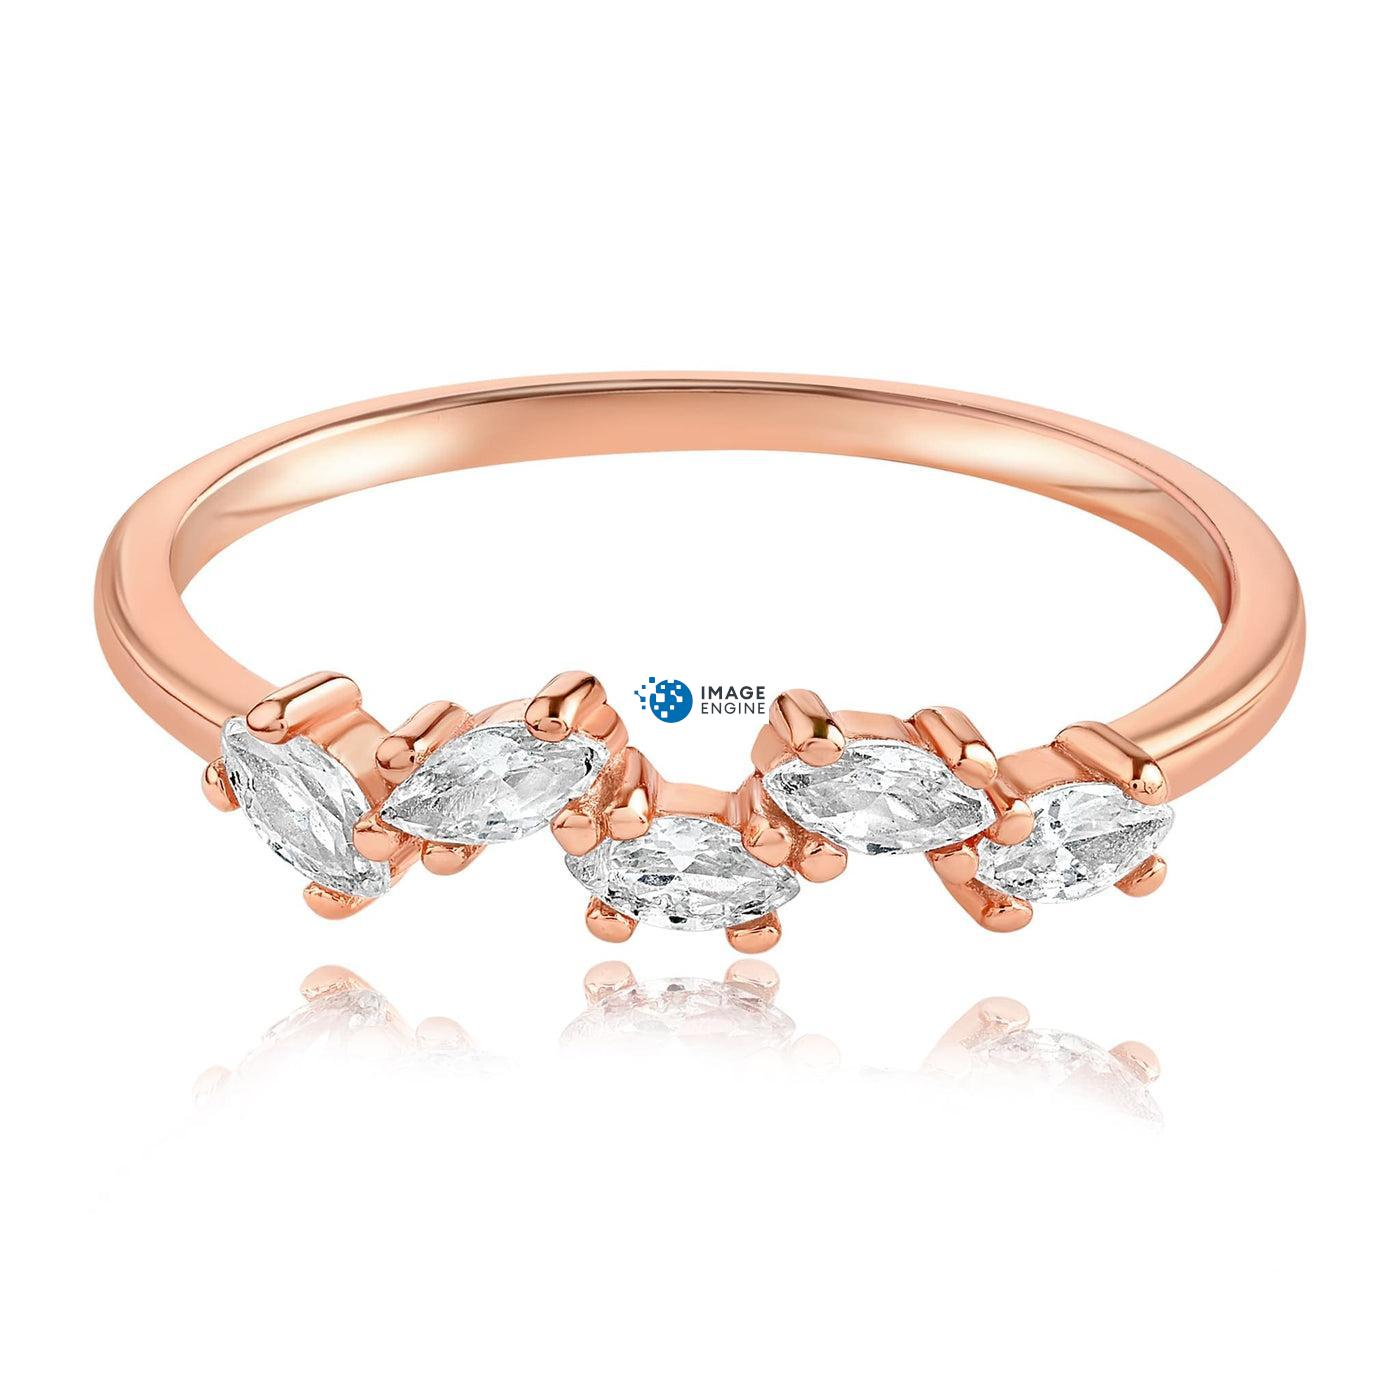 Genna Round Cut Ring - Front View Facing Down - 18K Rose Gold Vermeil